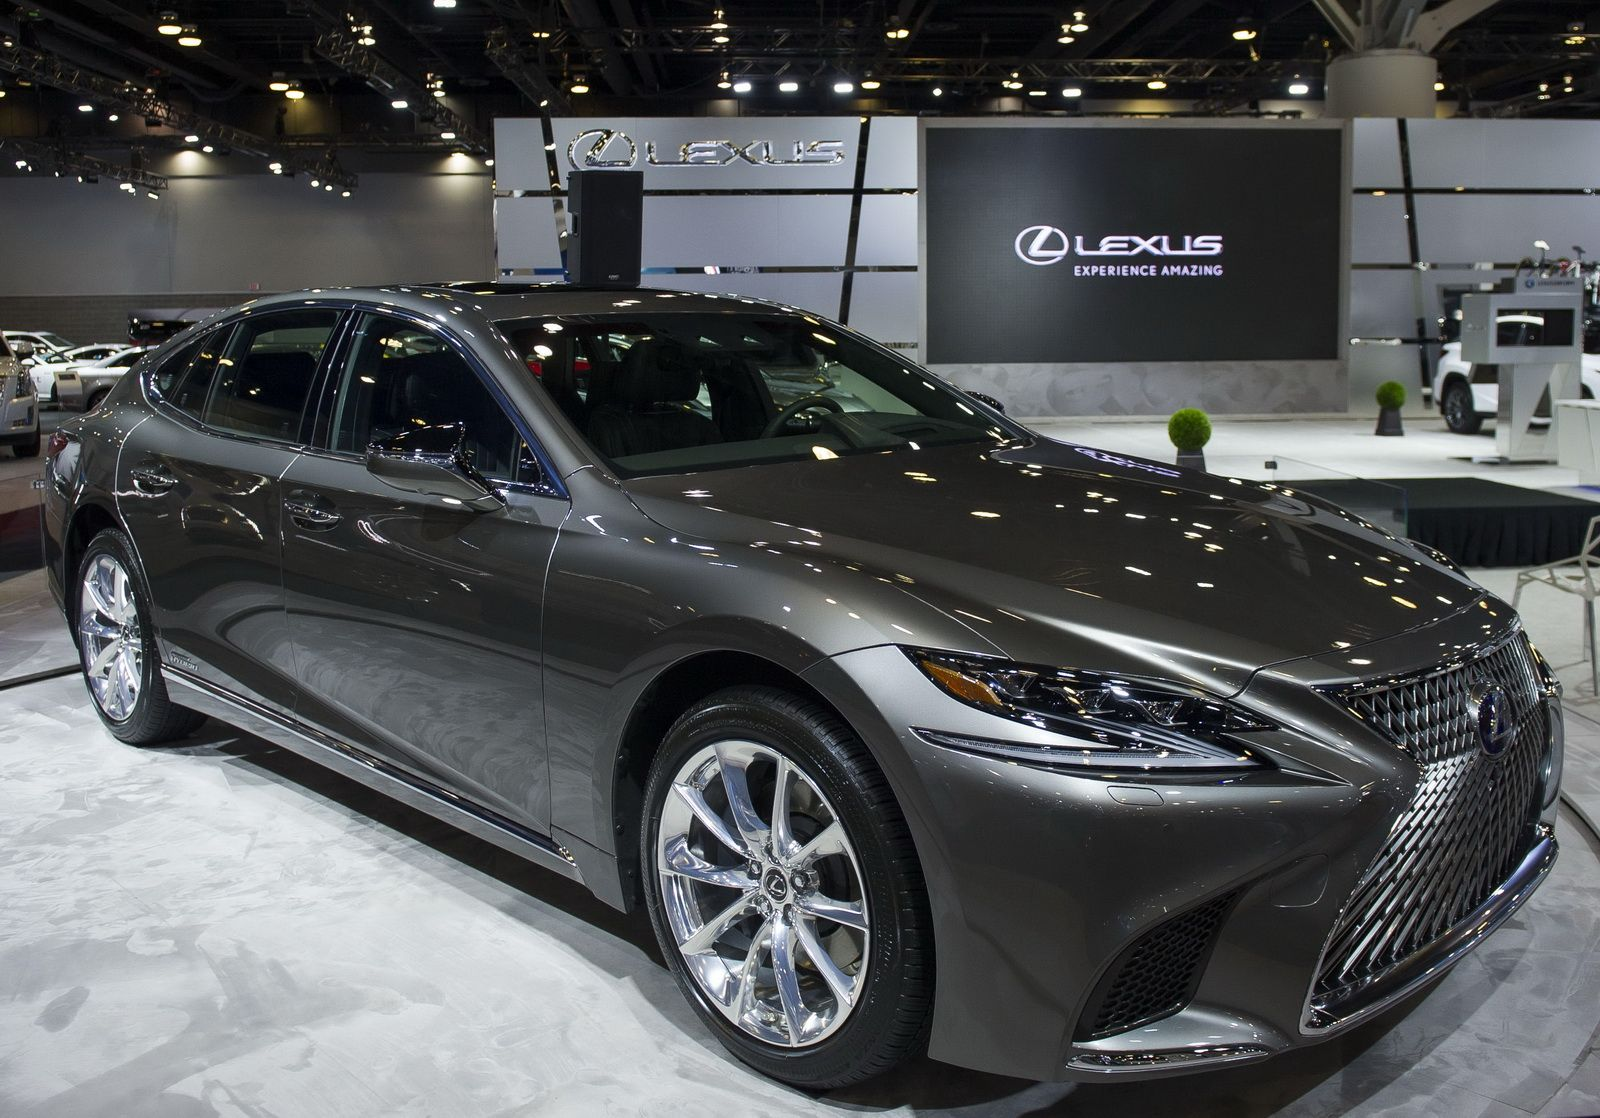 2018 lexus ls 500h redesign release date in the 2017 geneva engine display lexus offered the next of its two brand name new ls flagship sedans